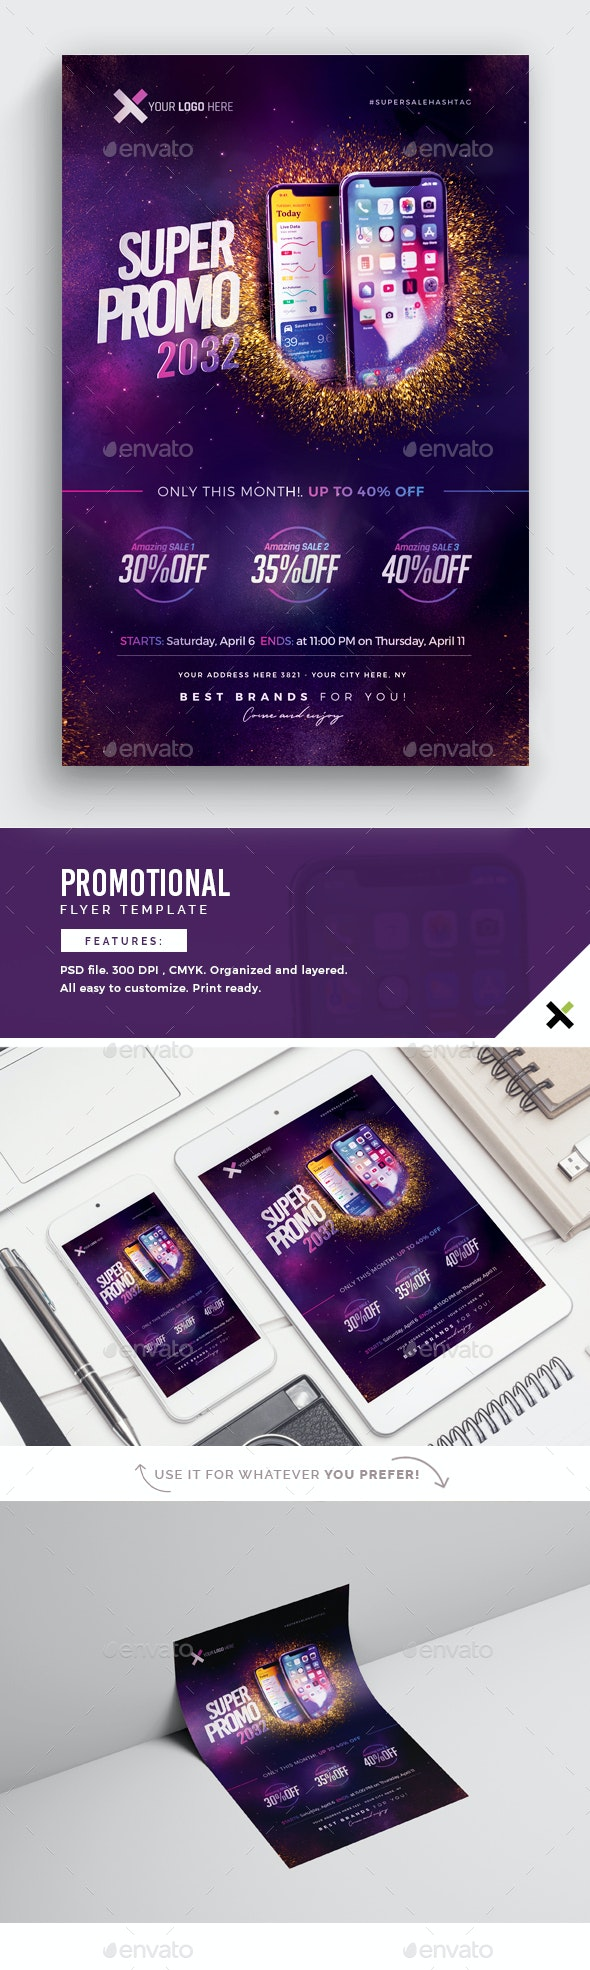 Promotional Flyer Template - Commerce Flyers